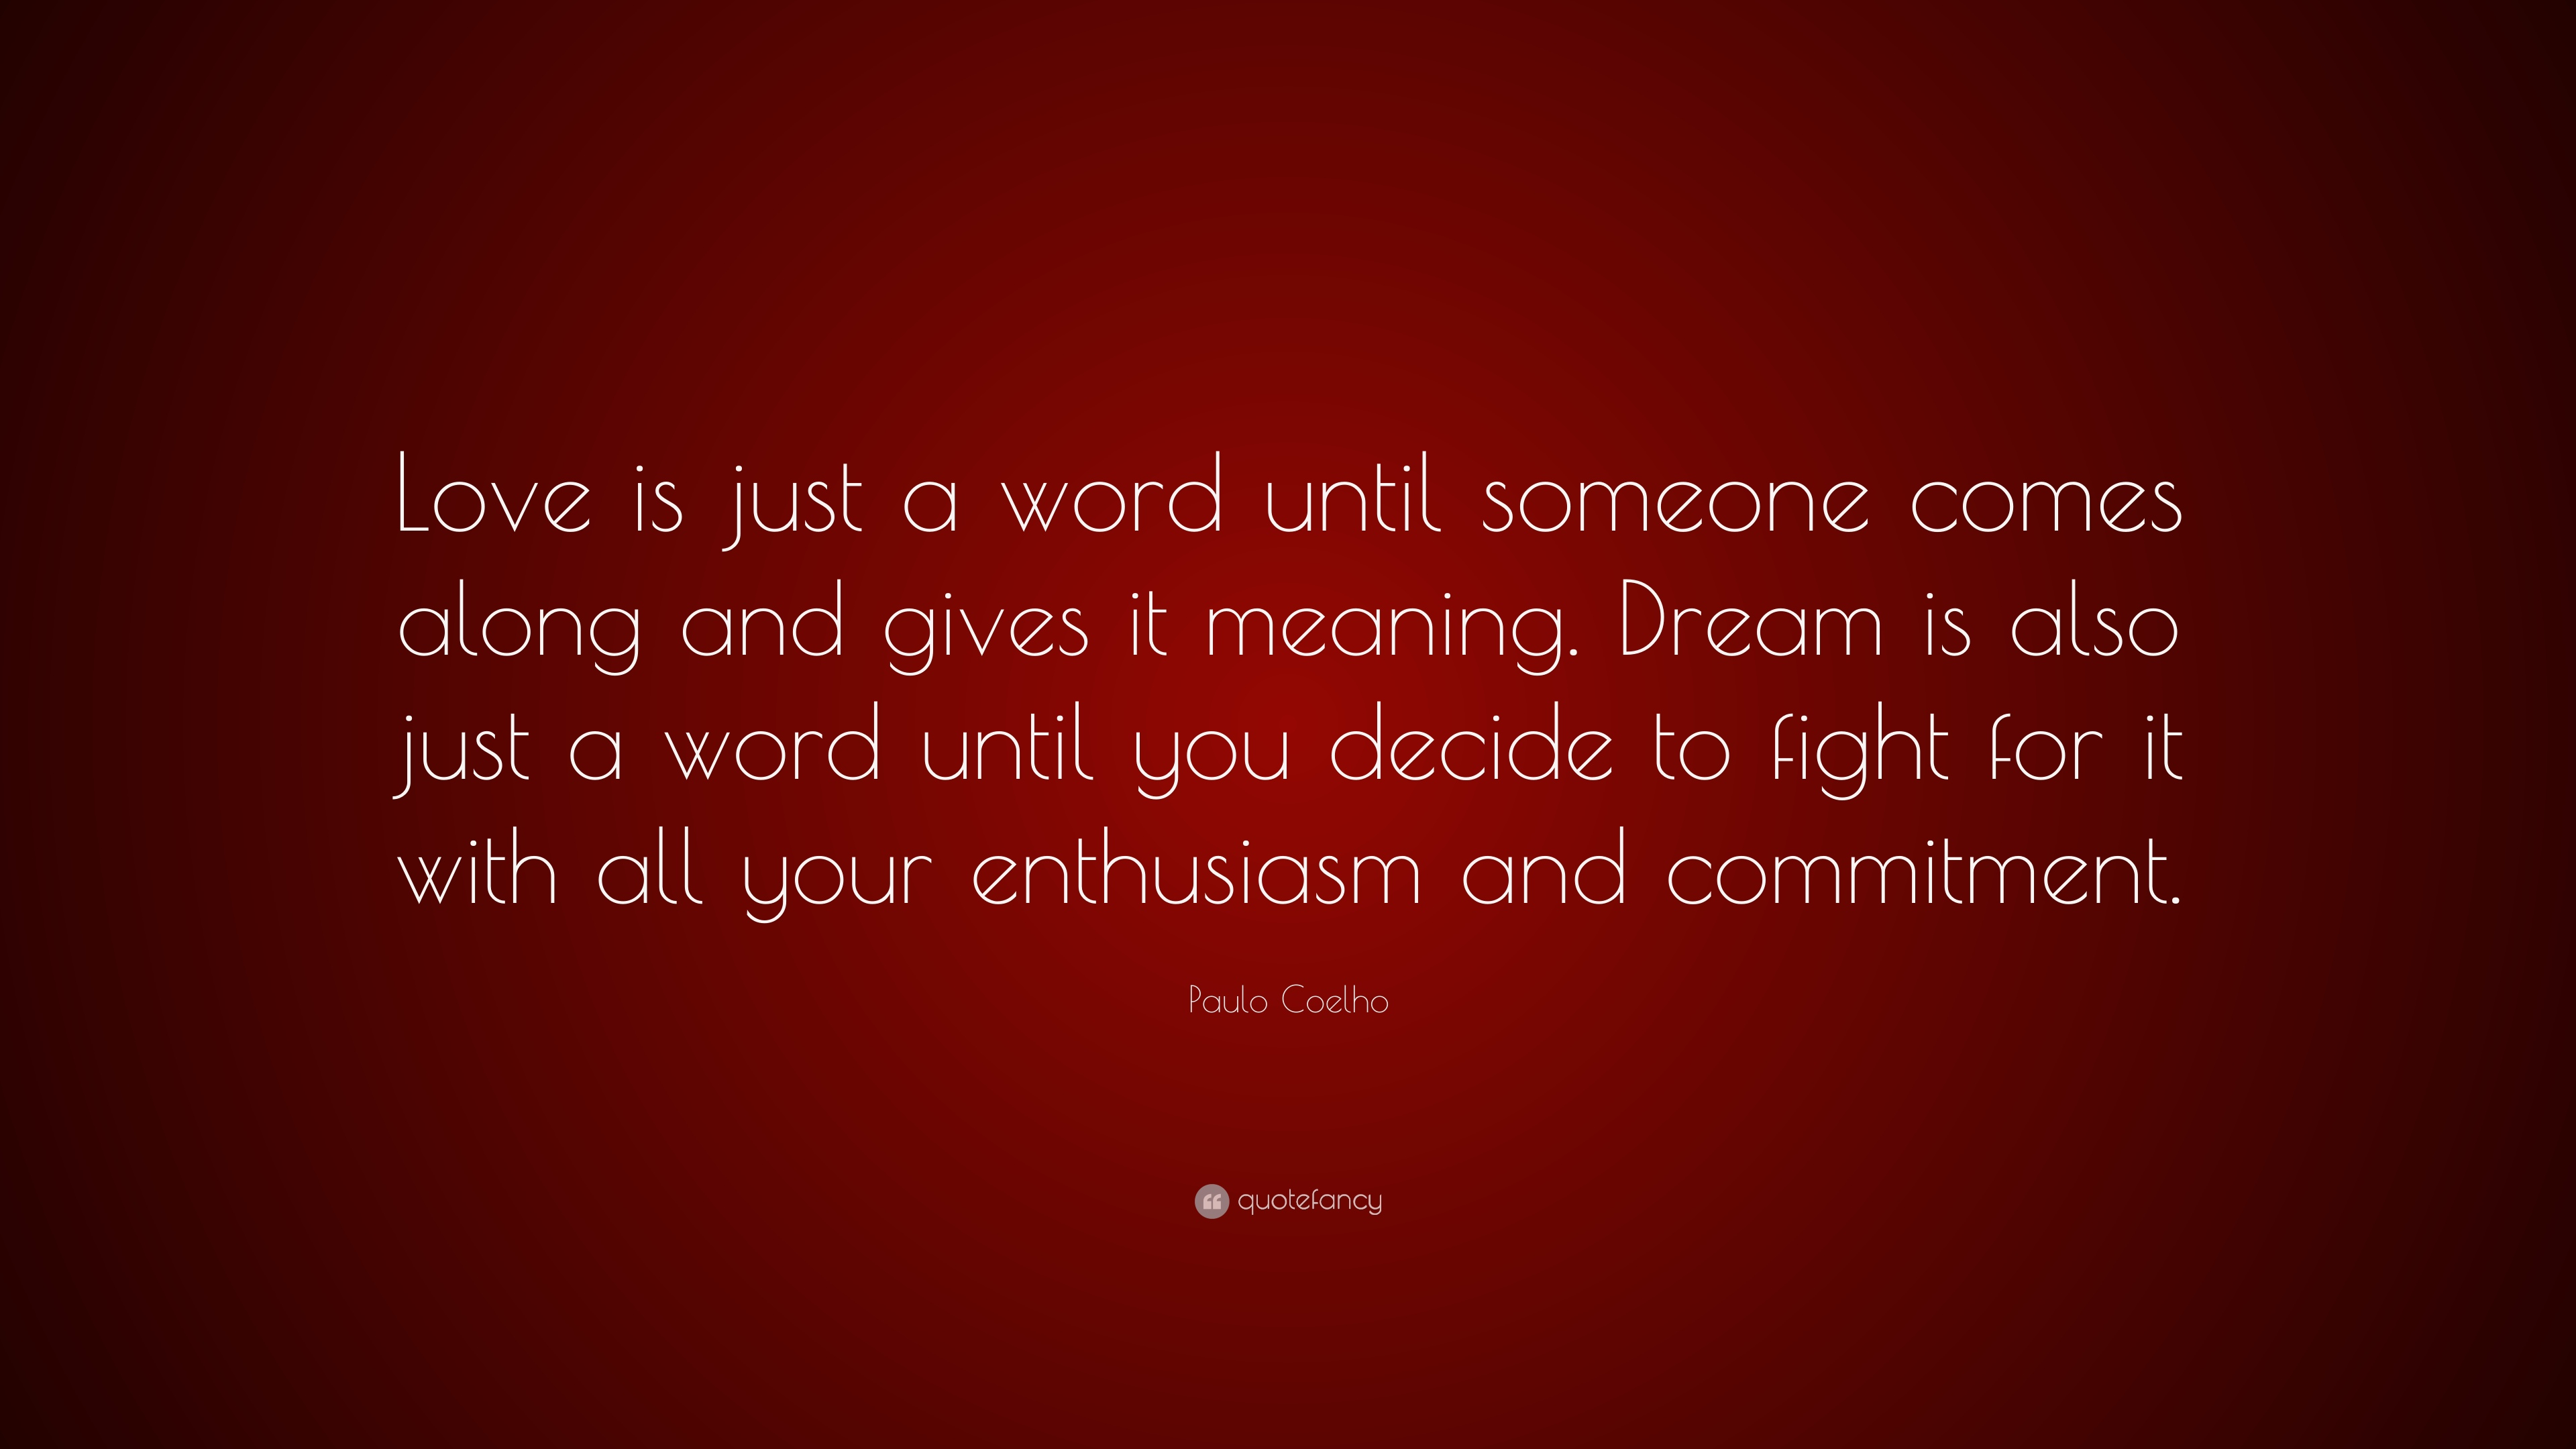 Paulo Coelho Quote Love Is Just A Word Until Someone Comes Along And Gives